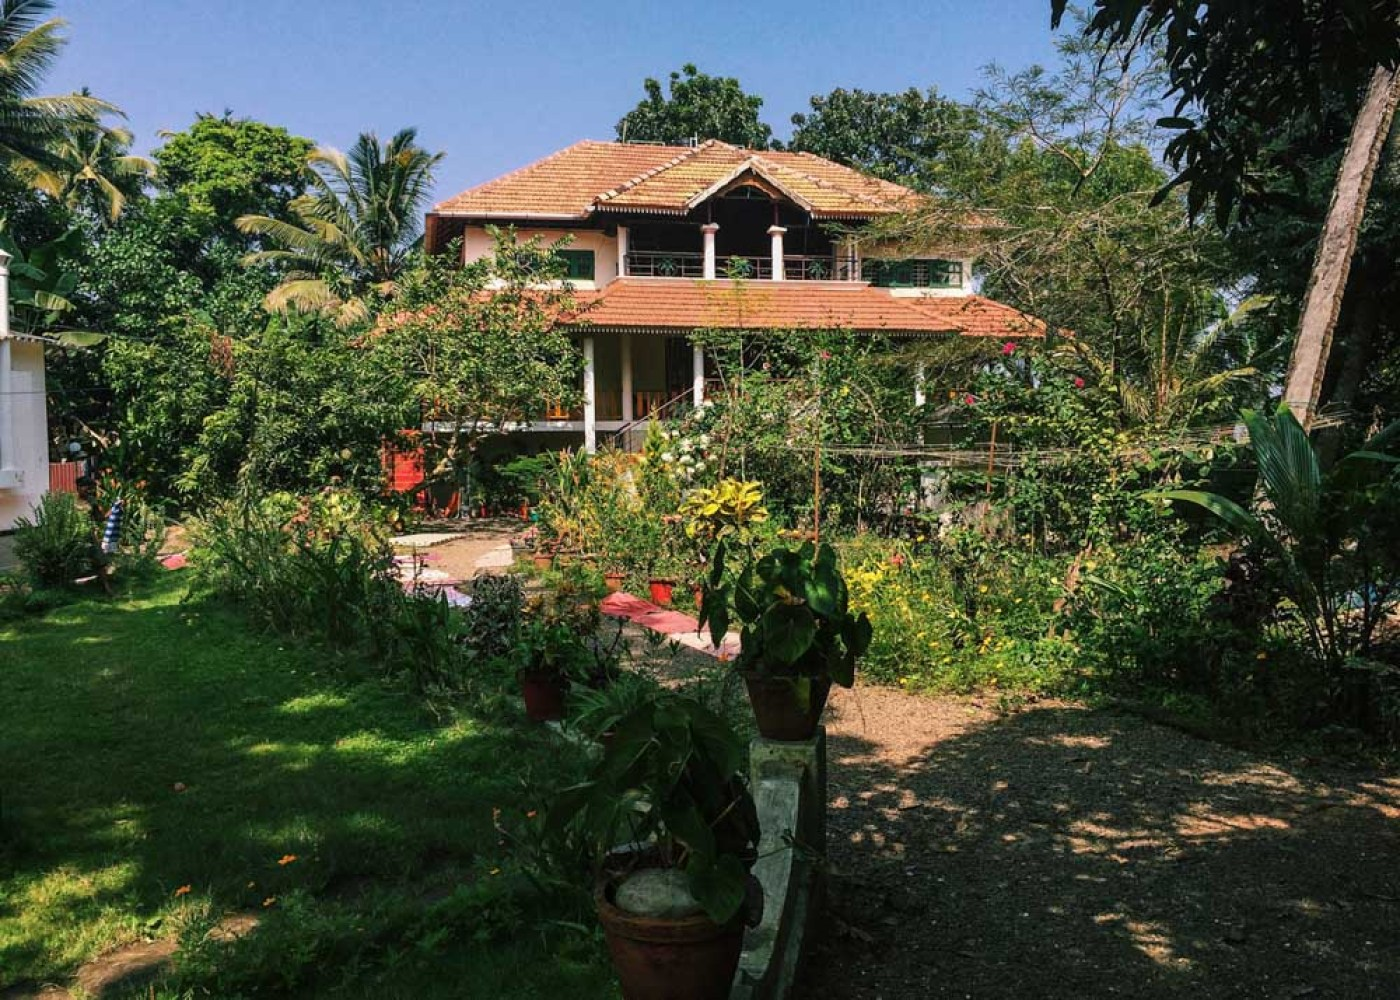 Greenpalms homestay – a special place to stay in Alleppey